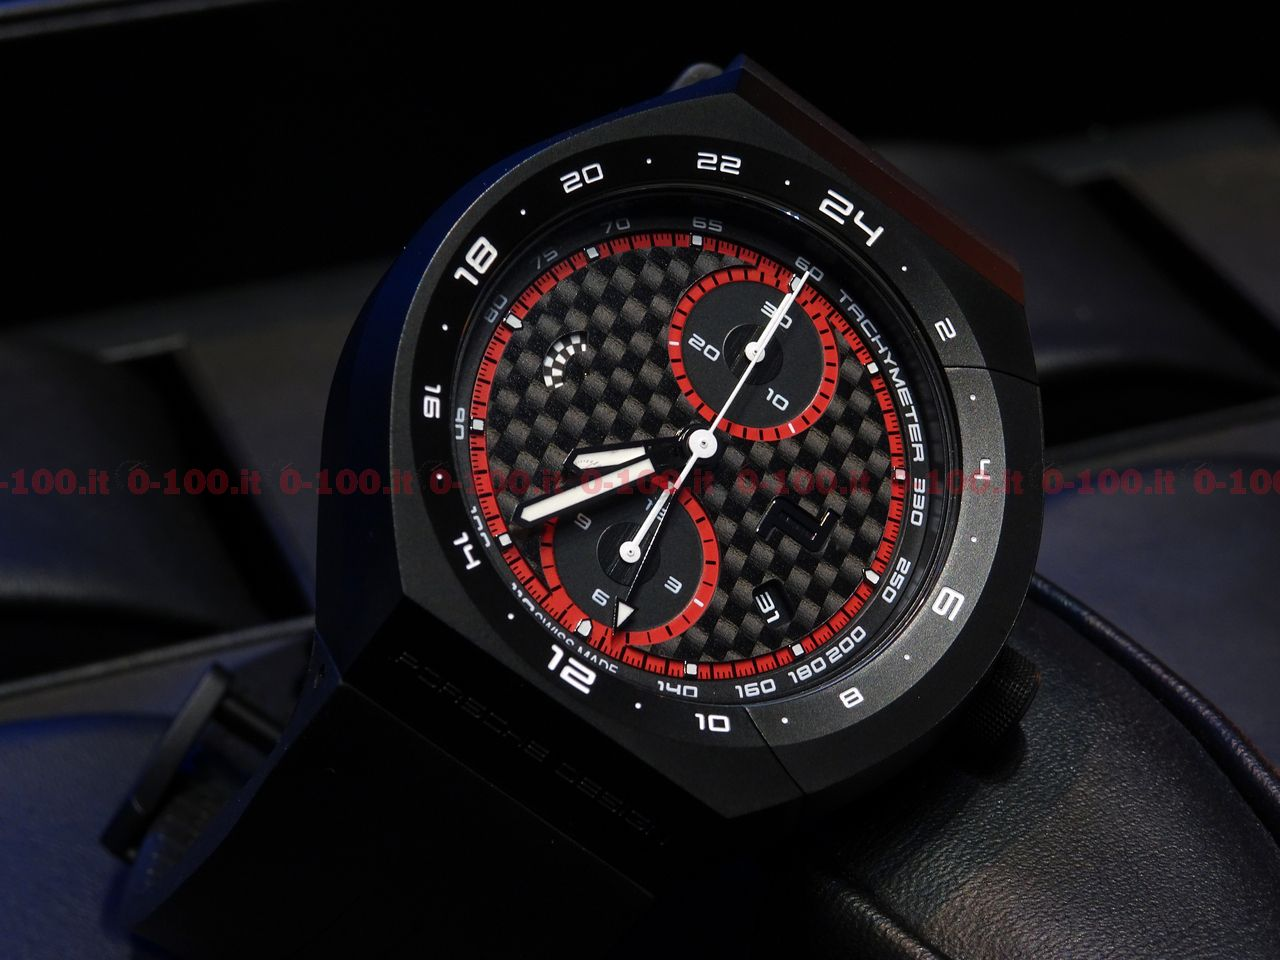 baselworld_2017_PORSCHE DESIGN ACTUATOR 24H-CHRONOTIMER LIMITED EDITION_0-100_1